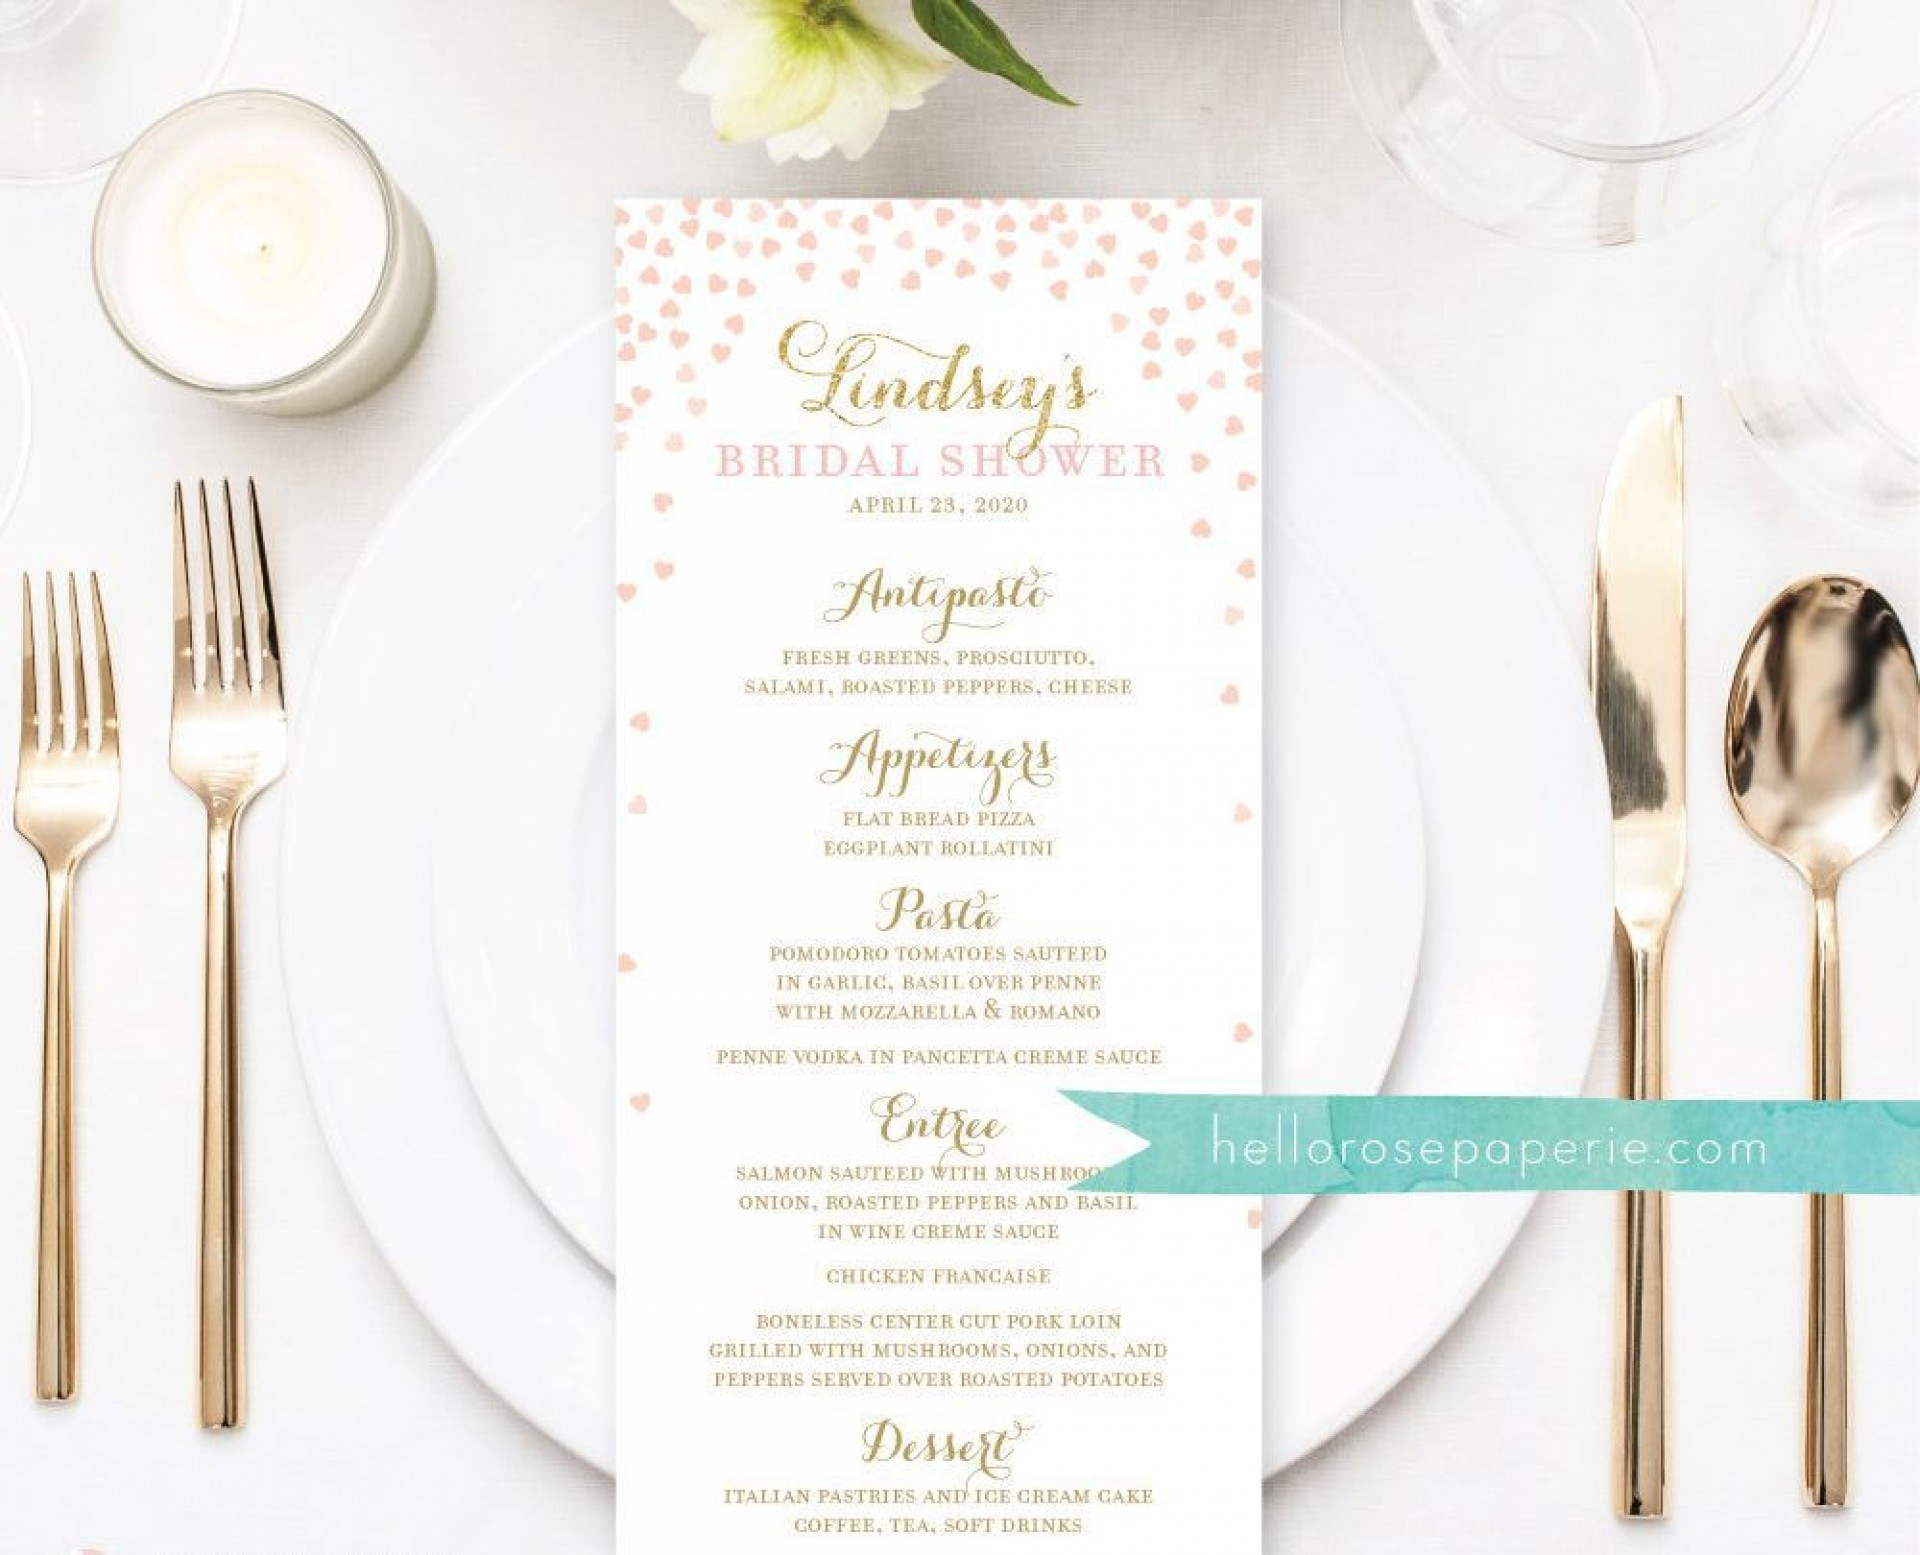 009 Beautiful Baby Shower Menu Template Idea  Templates Lunch Printable Downloadable1920